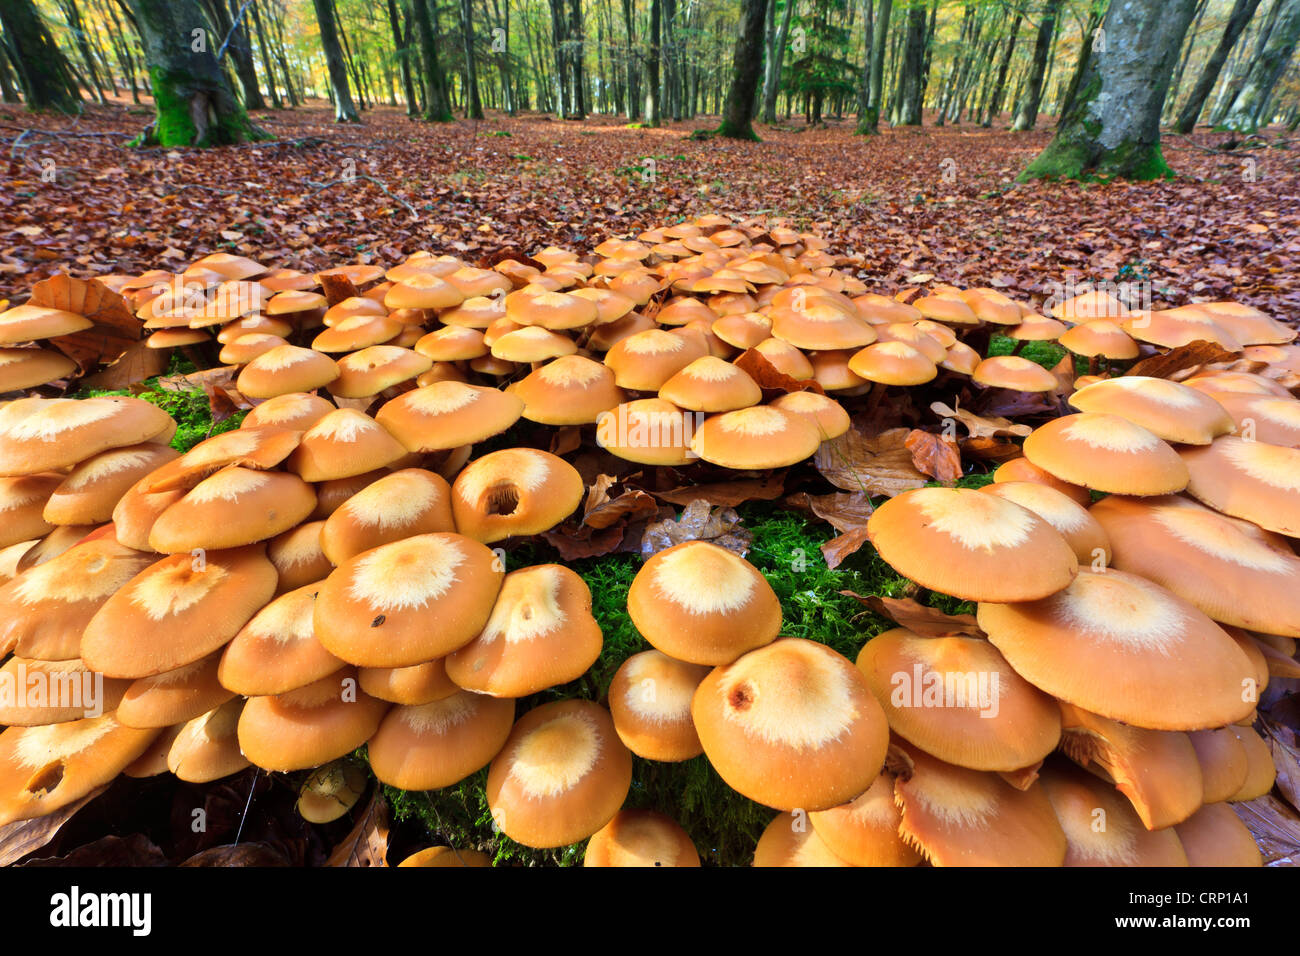 A cluster of mushrooms on a tree stump at Broomy Inclosure in the New Forest National Park. - Stock Image